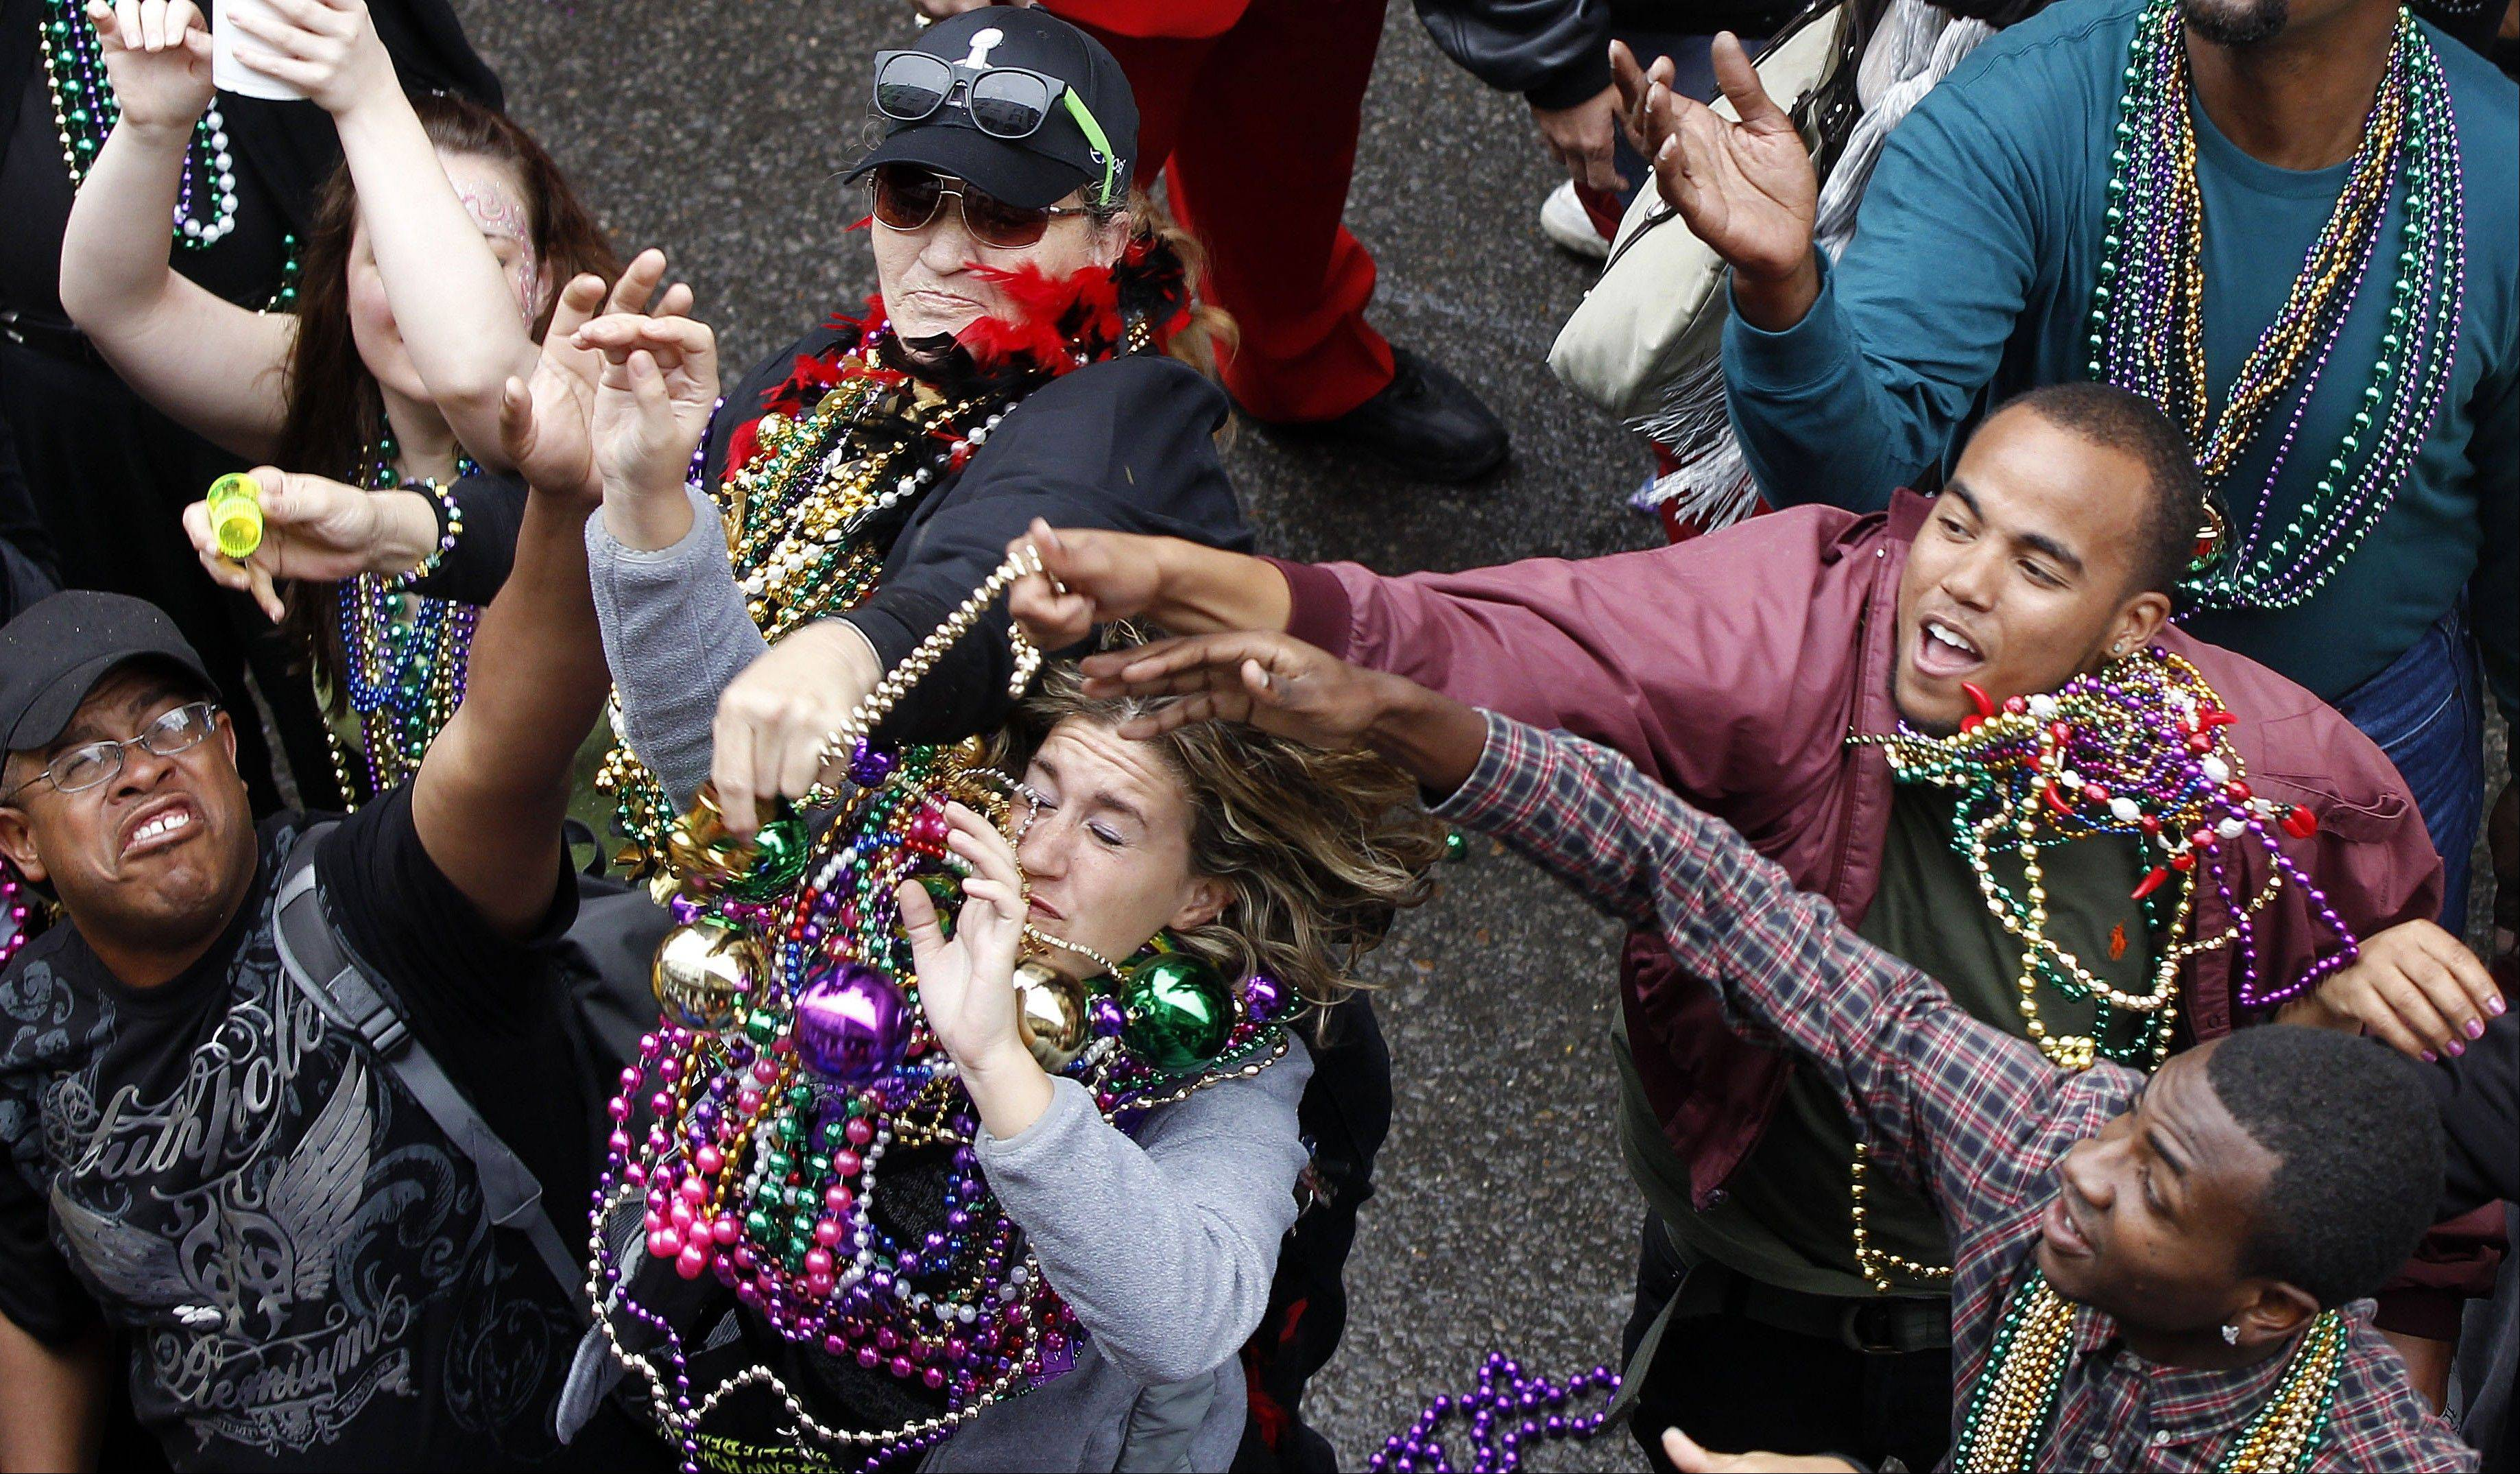 Revelers grab for beads as they are tossed from the balcony of the Royal Sonesta Hotel on Bourbon Street during Mardi Gras in New Orleans, Tuesday, Feb. 12, 2013.